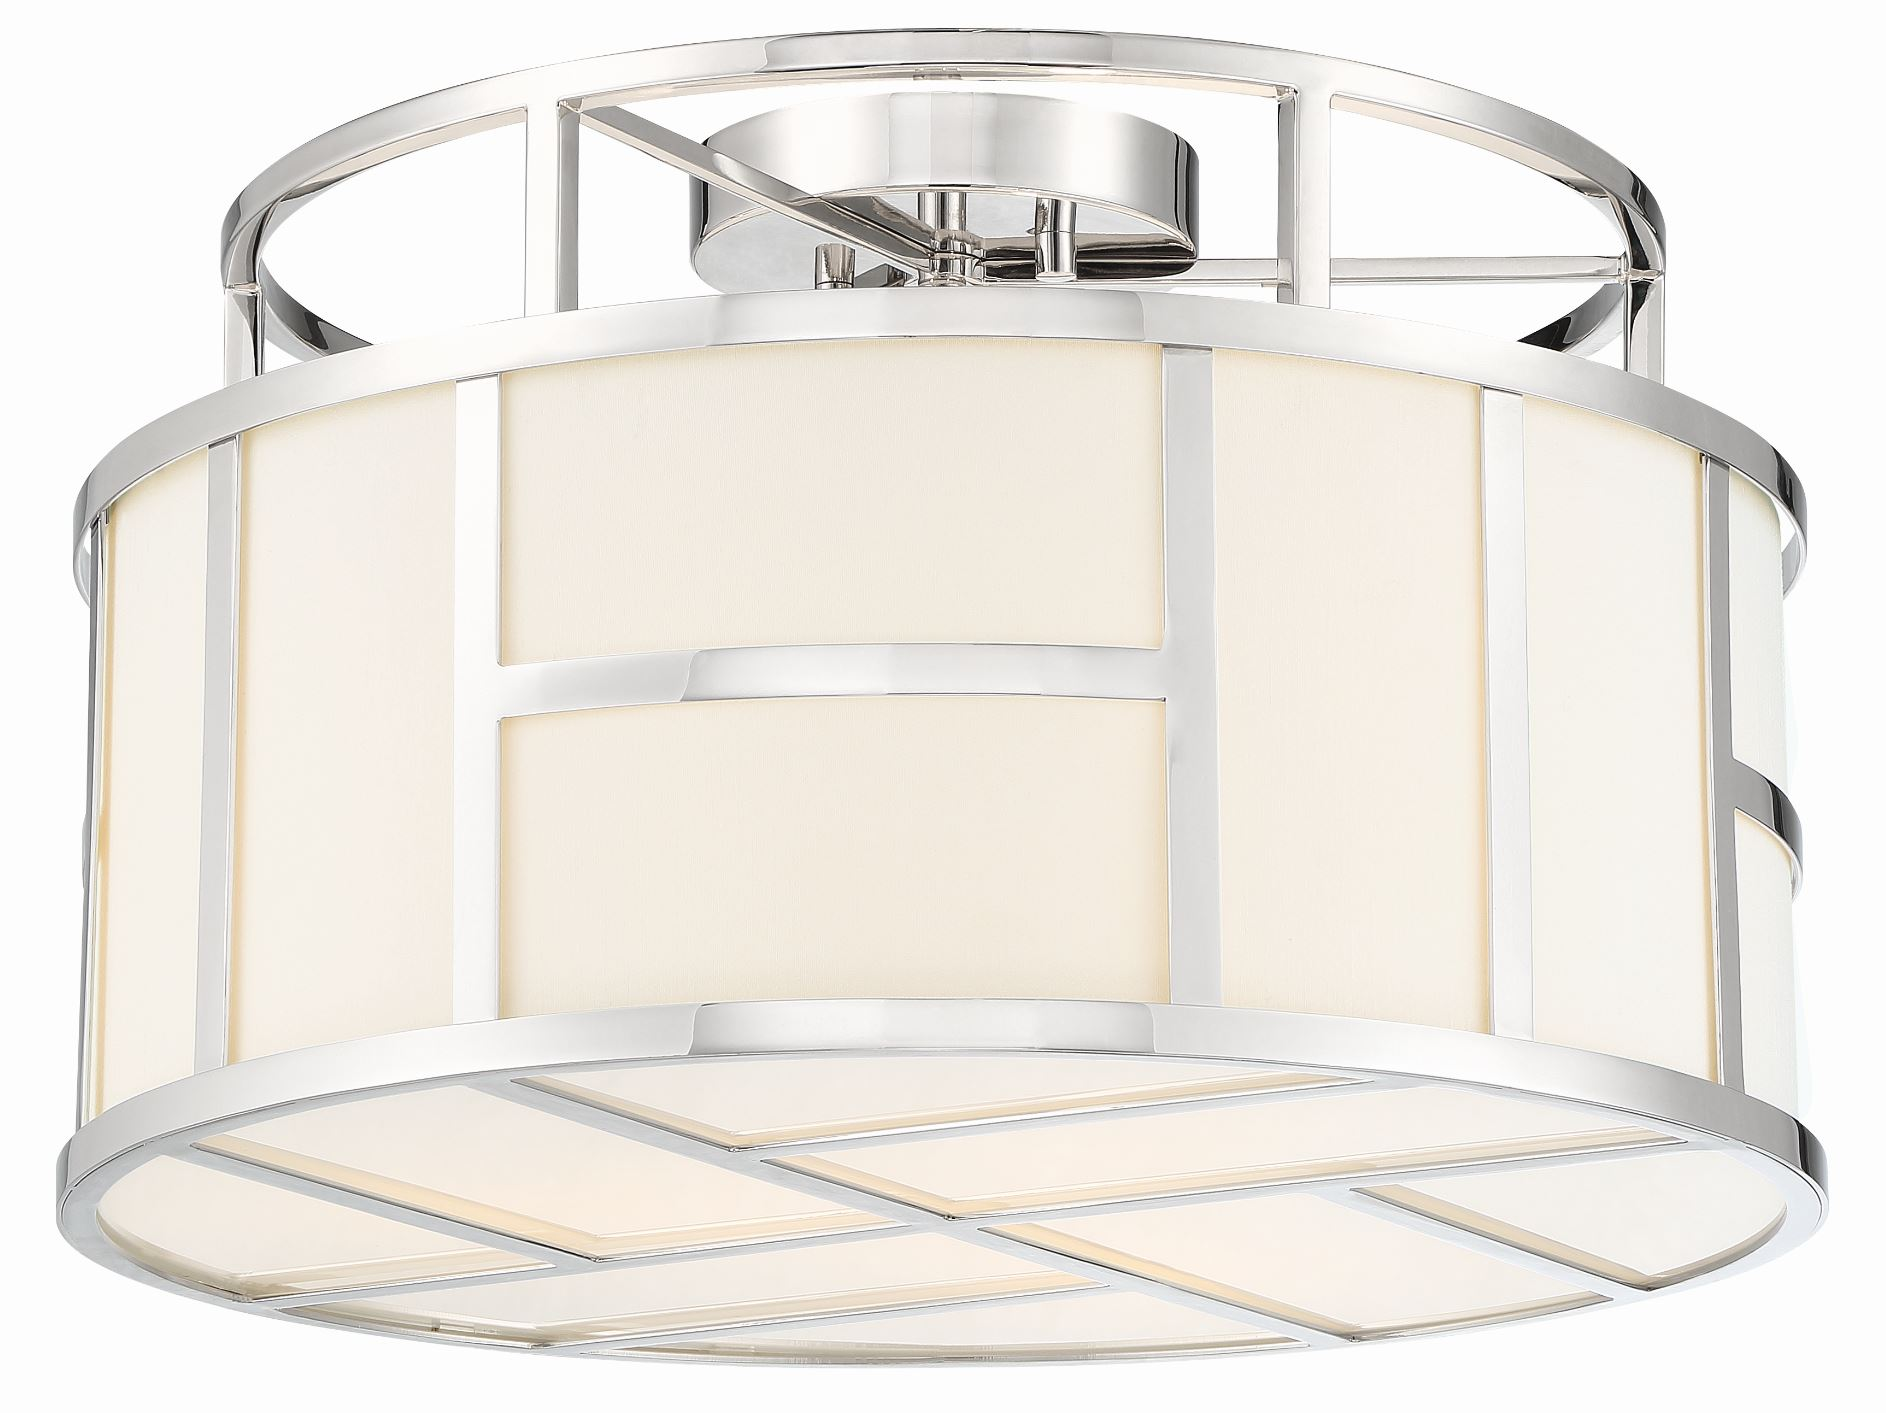 Crystorama's Danielson Collection flush mount is designed by Libby Langdon.